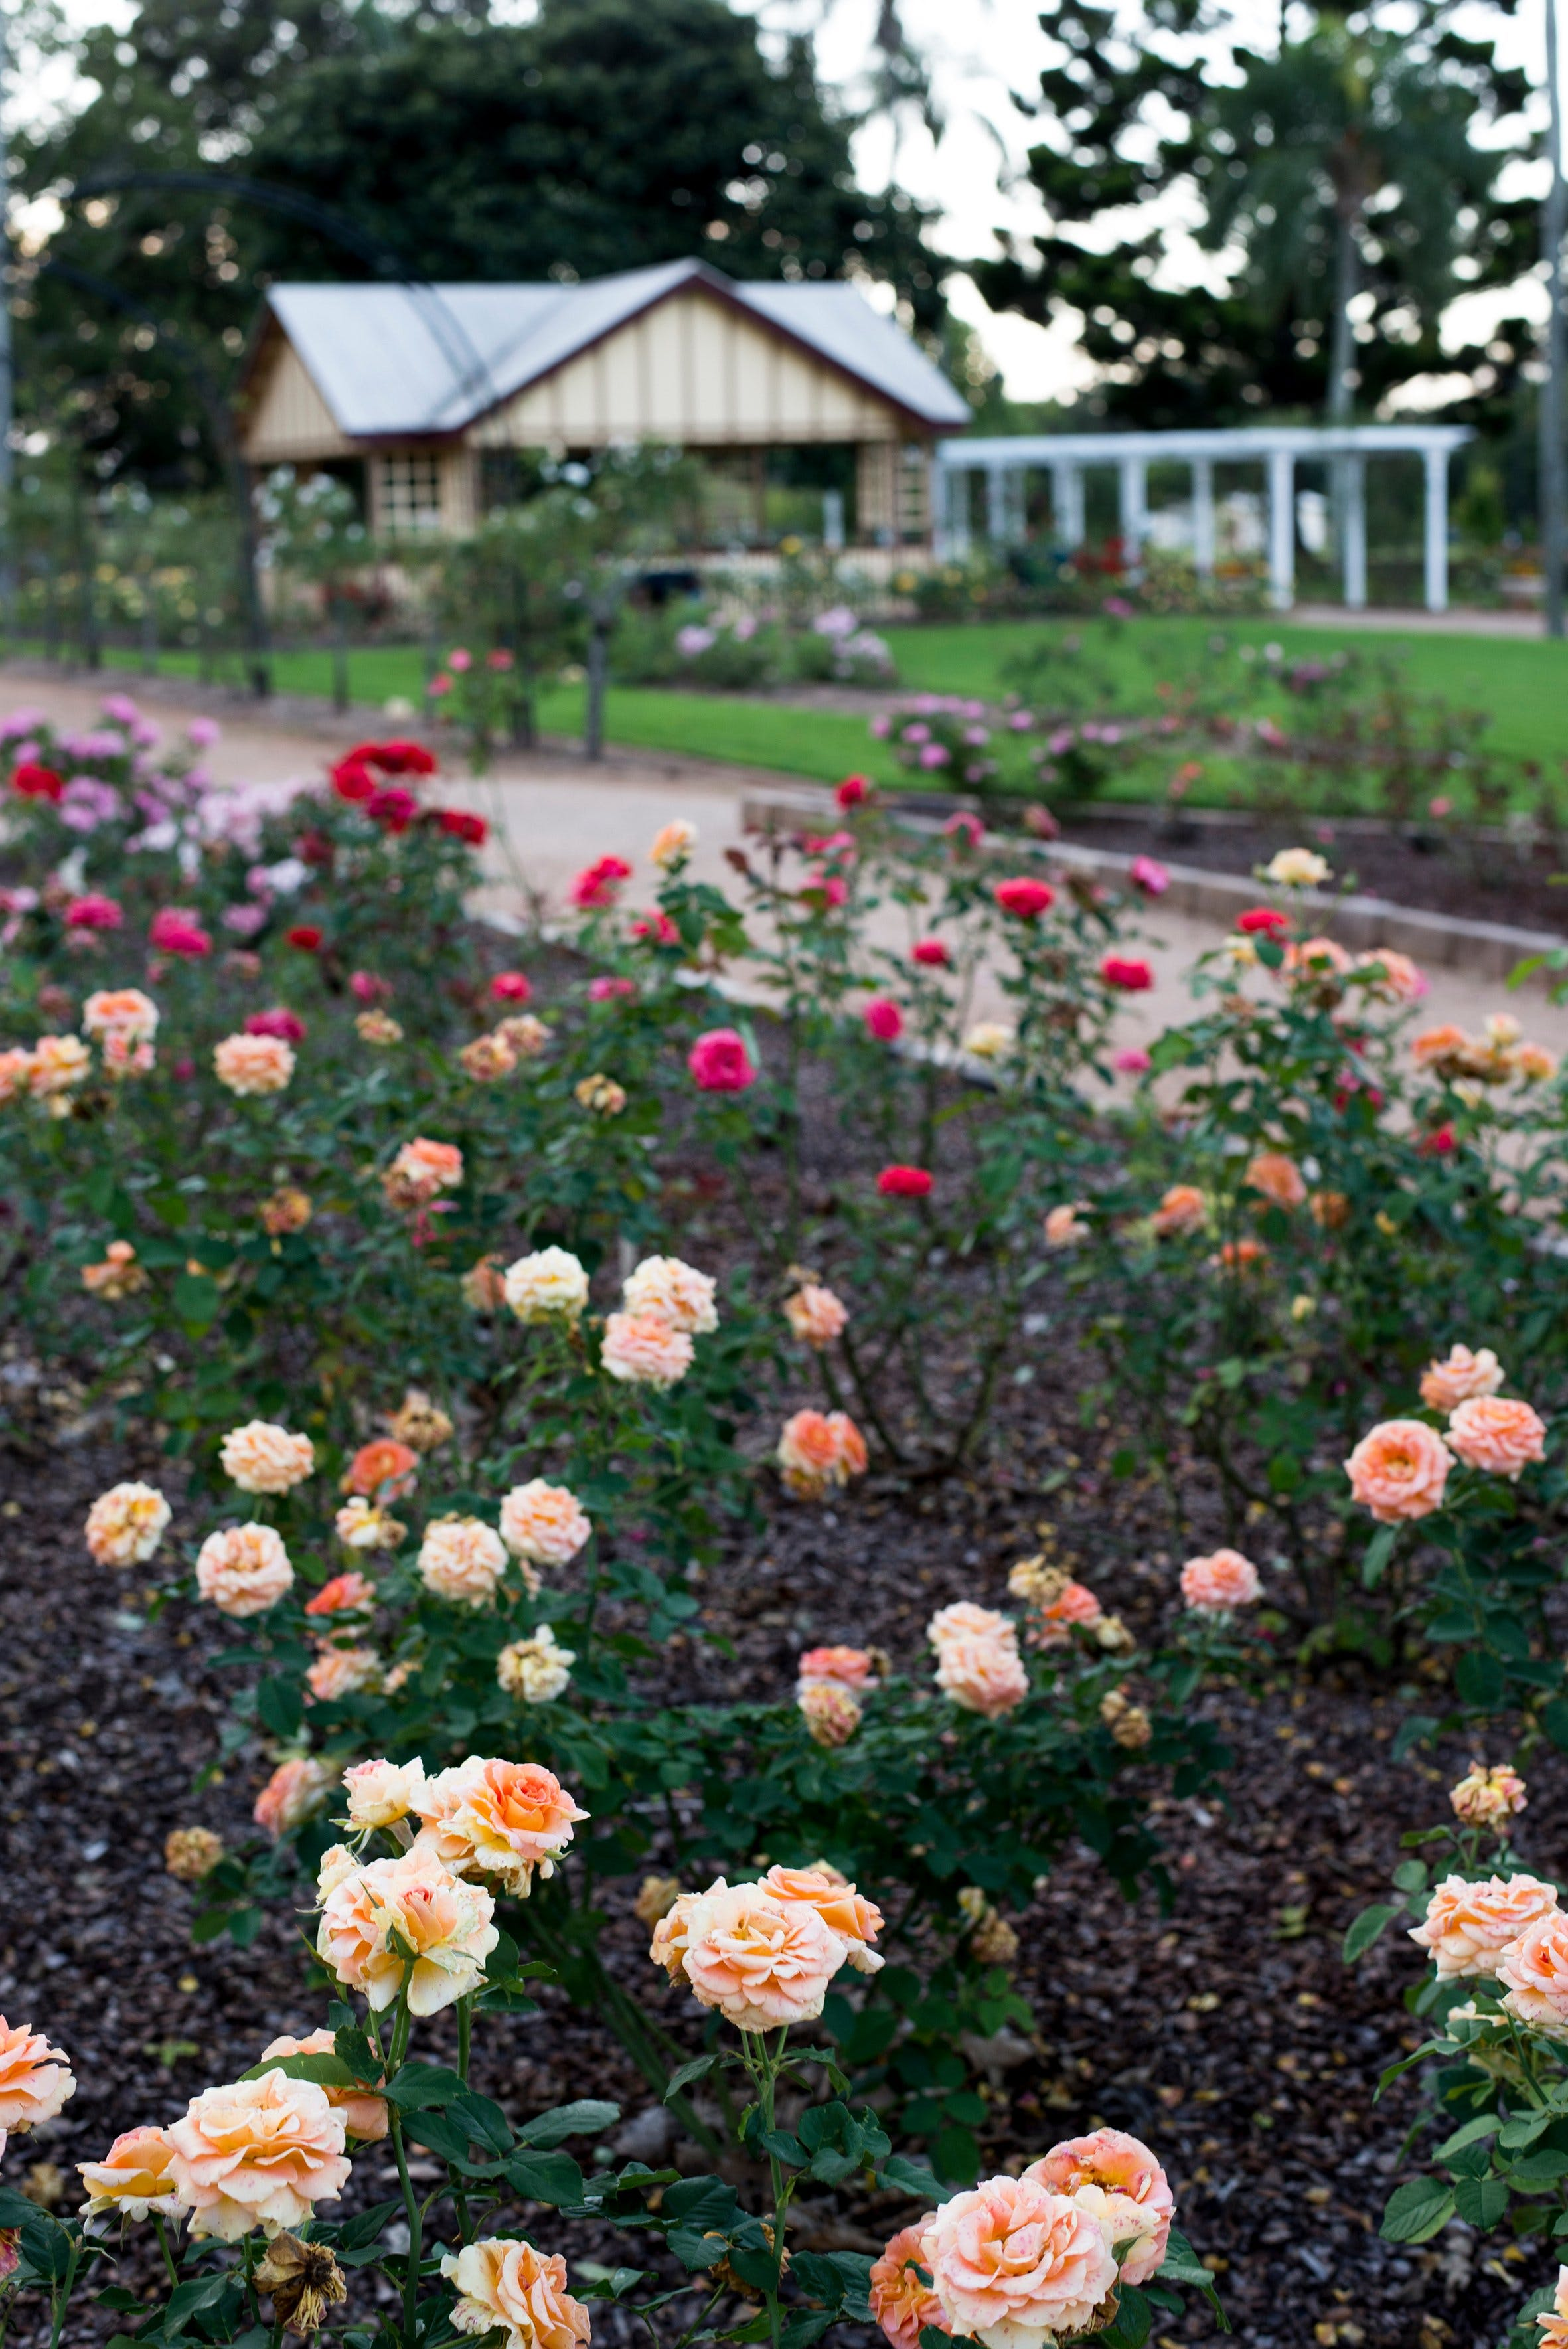 Newtown Park State Rose Garden Logo and Images